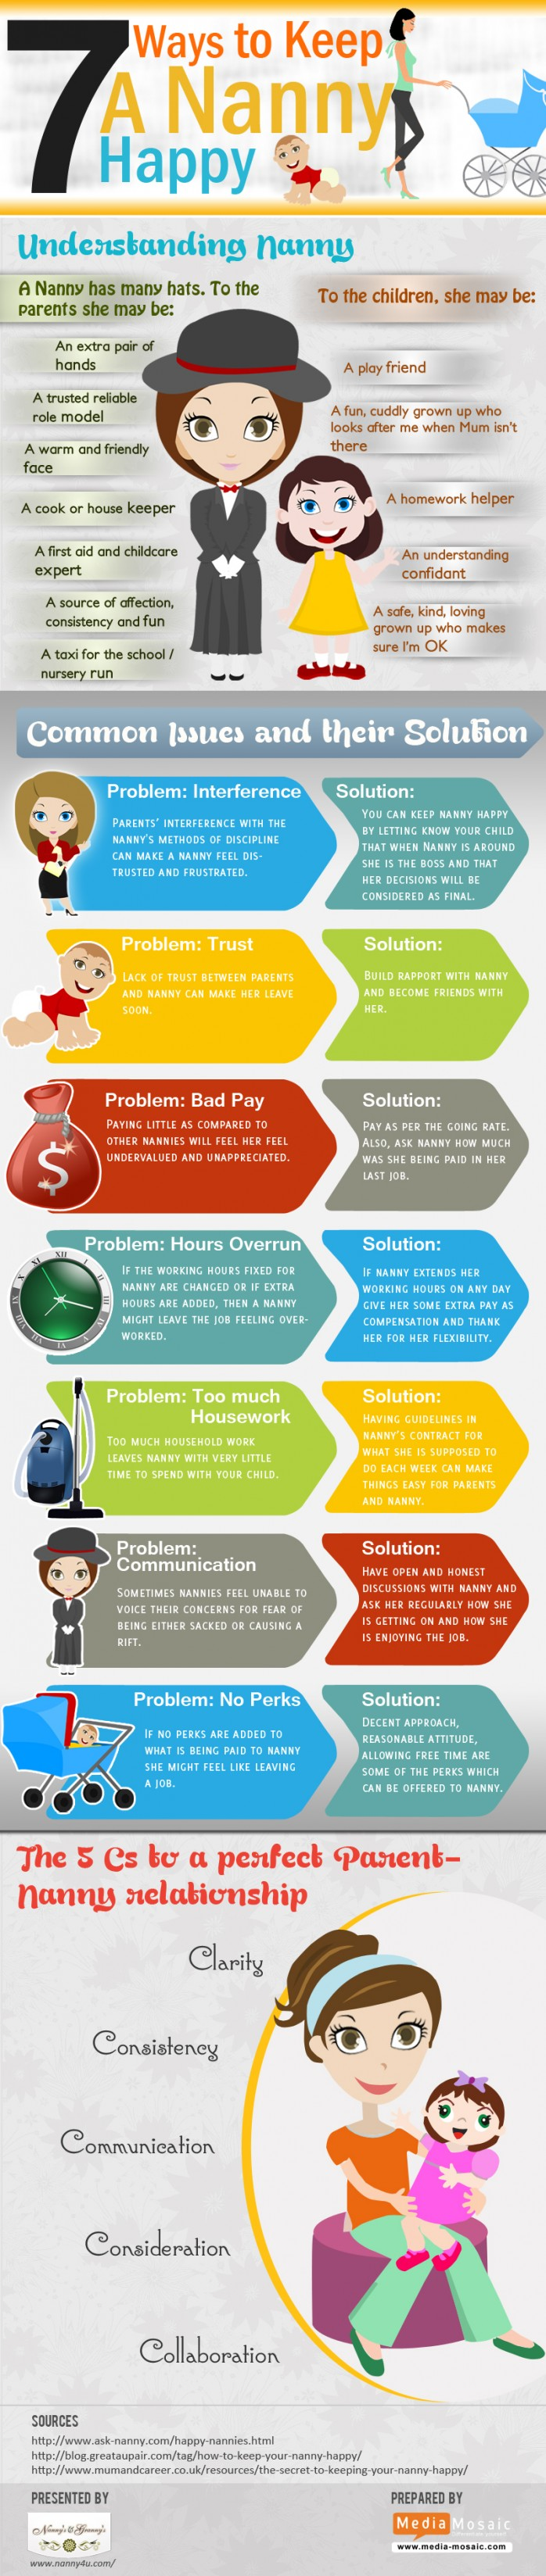 Seven Ways to Keep a Nanny Happy (Infographic)